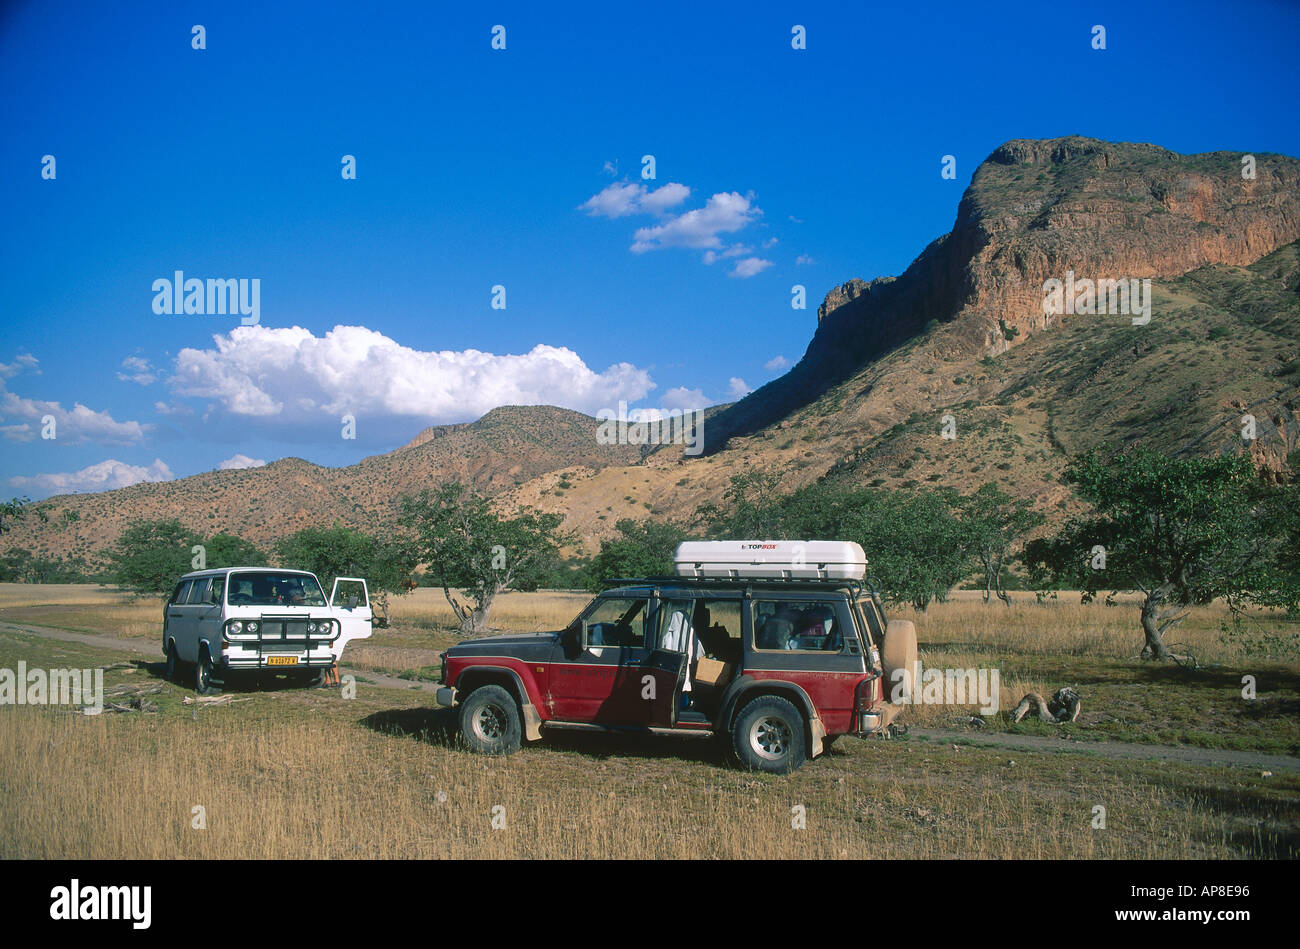 Two SUVs on a landscape - Stock Image